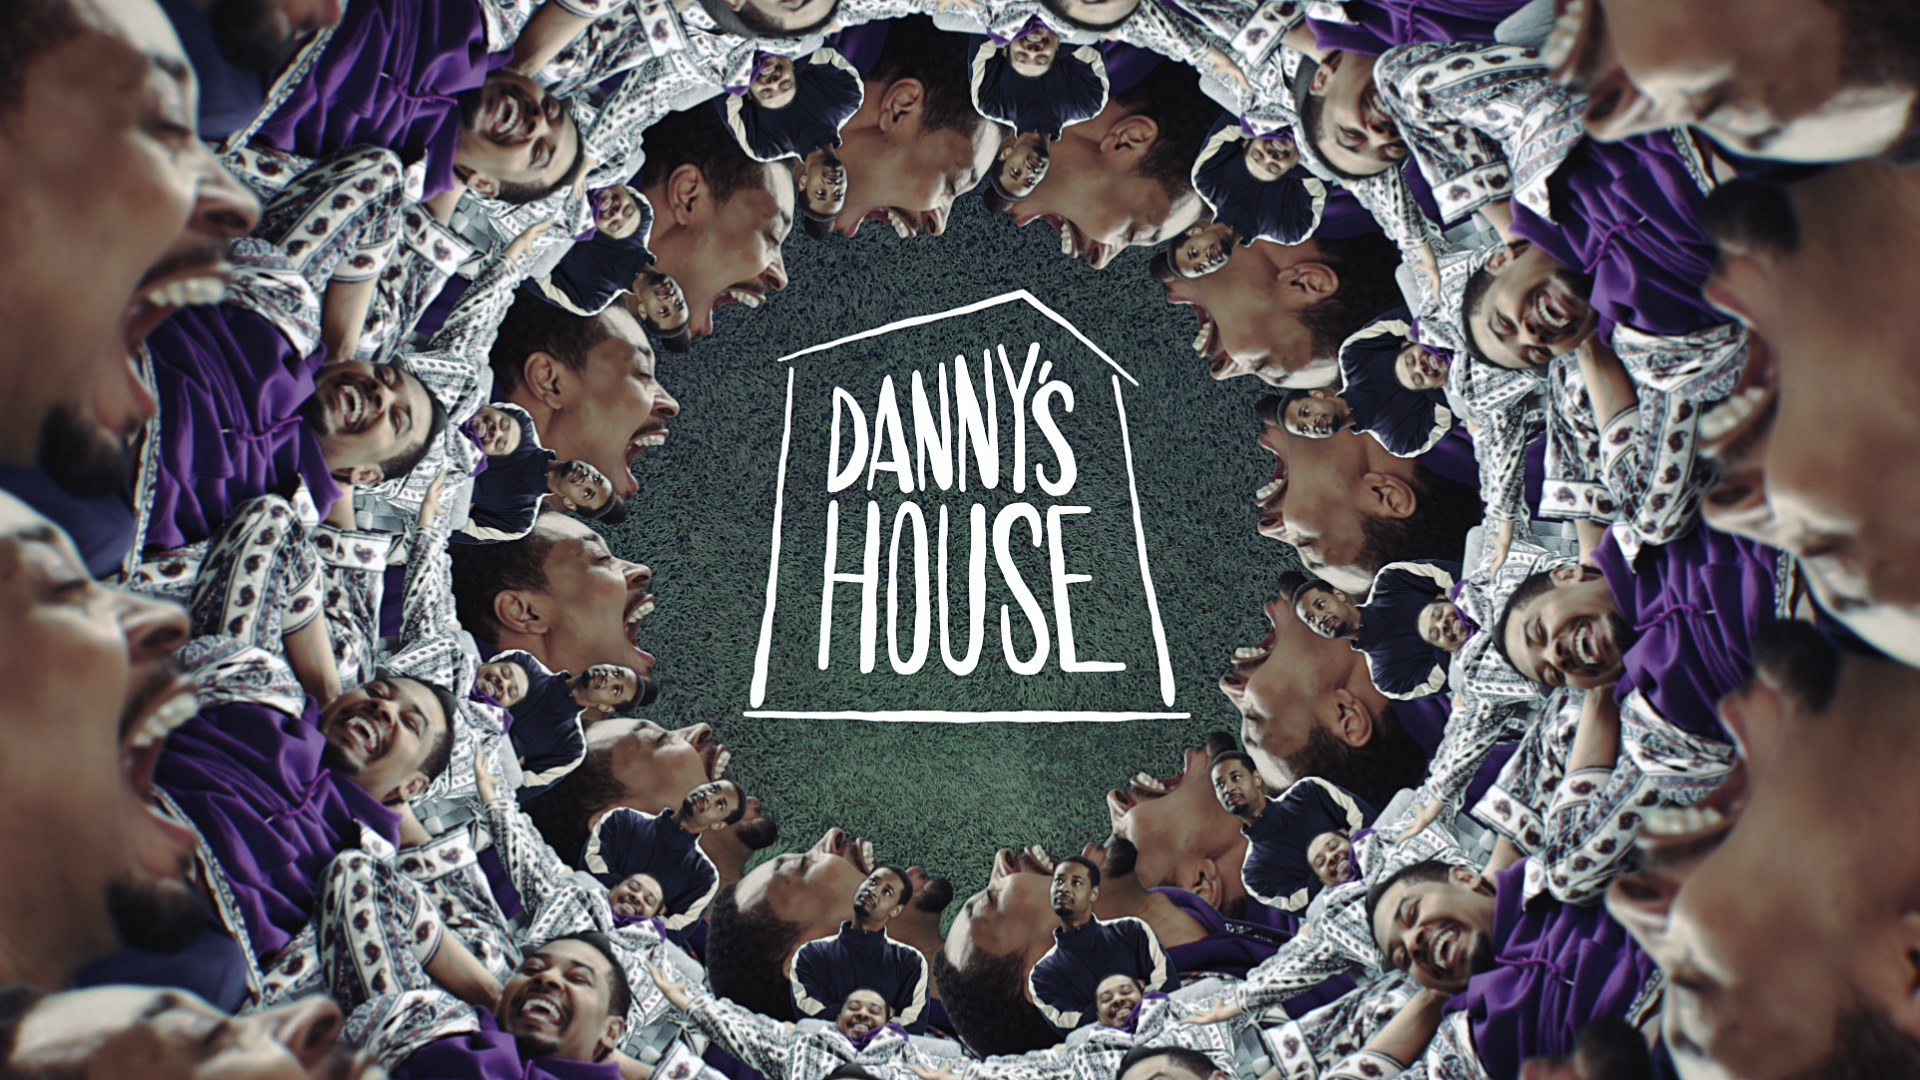 Danny's House  - TV Series - VICELAND, 2019  Editor